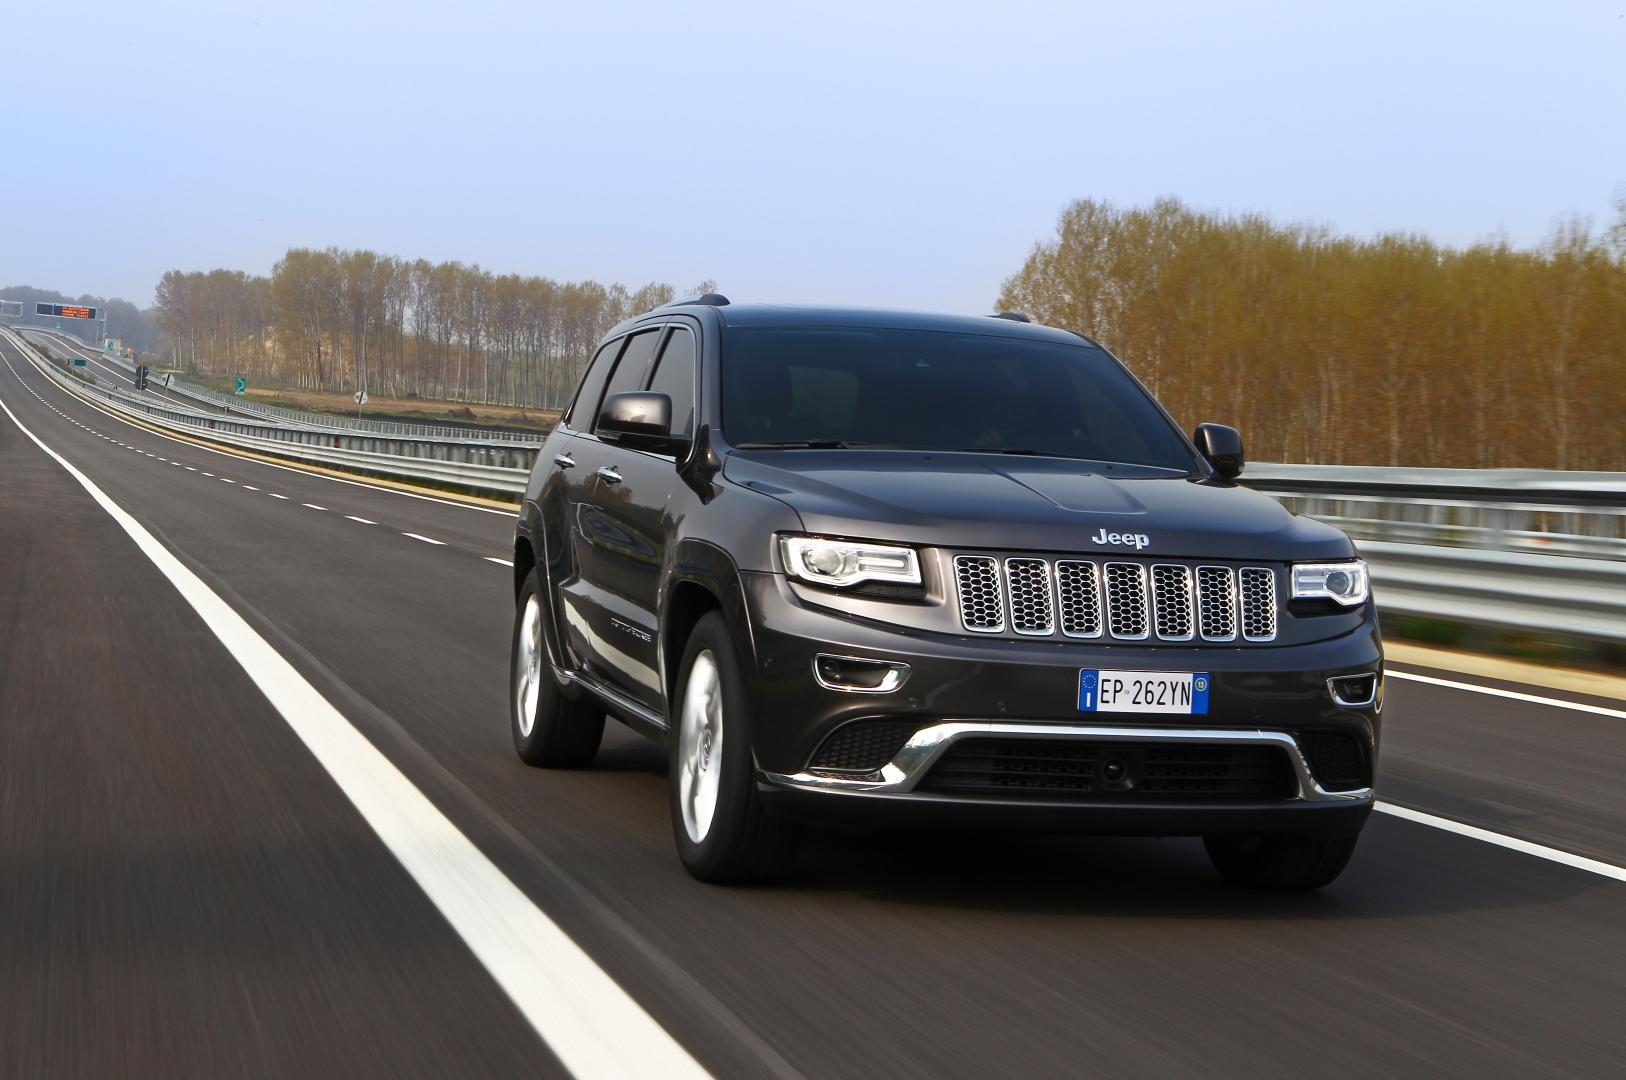 jeep grand cherokee 5 7 v8 summit 2013 test specificaties topgear. Black Bedroom Furniture Sets. Home Design Ideas